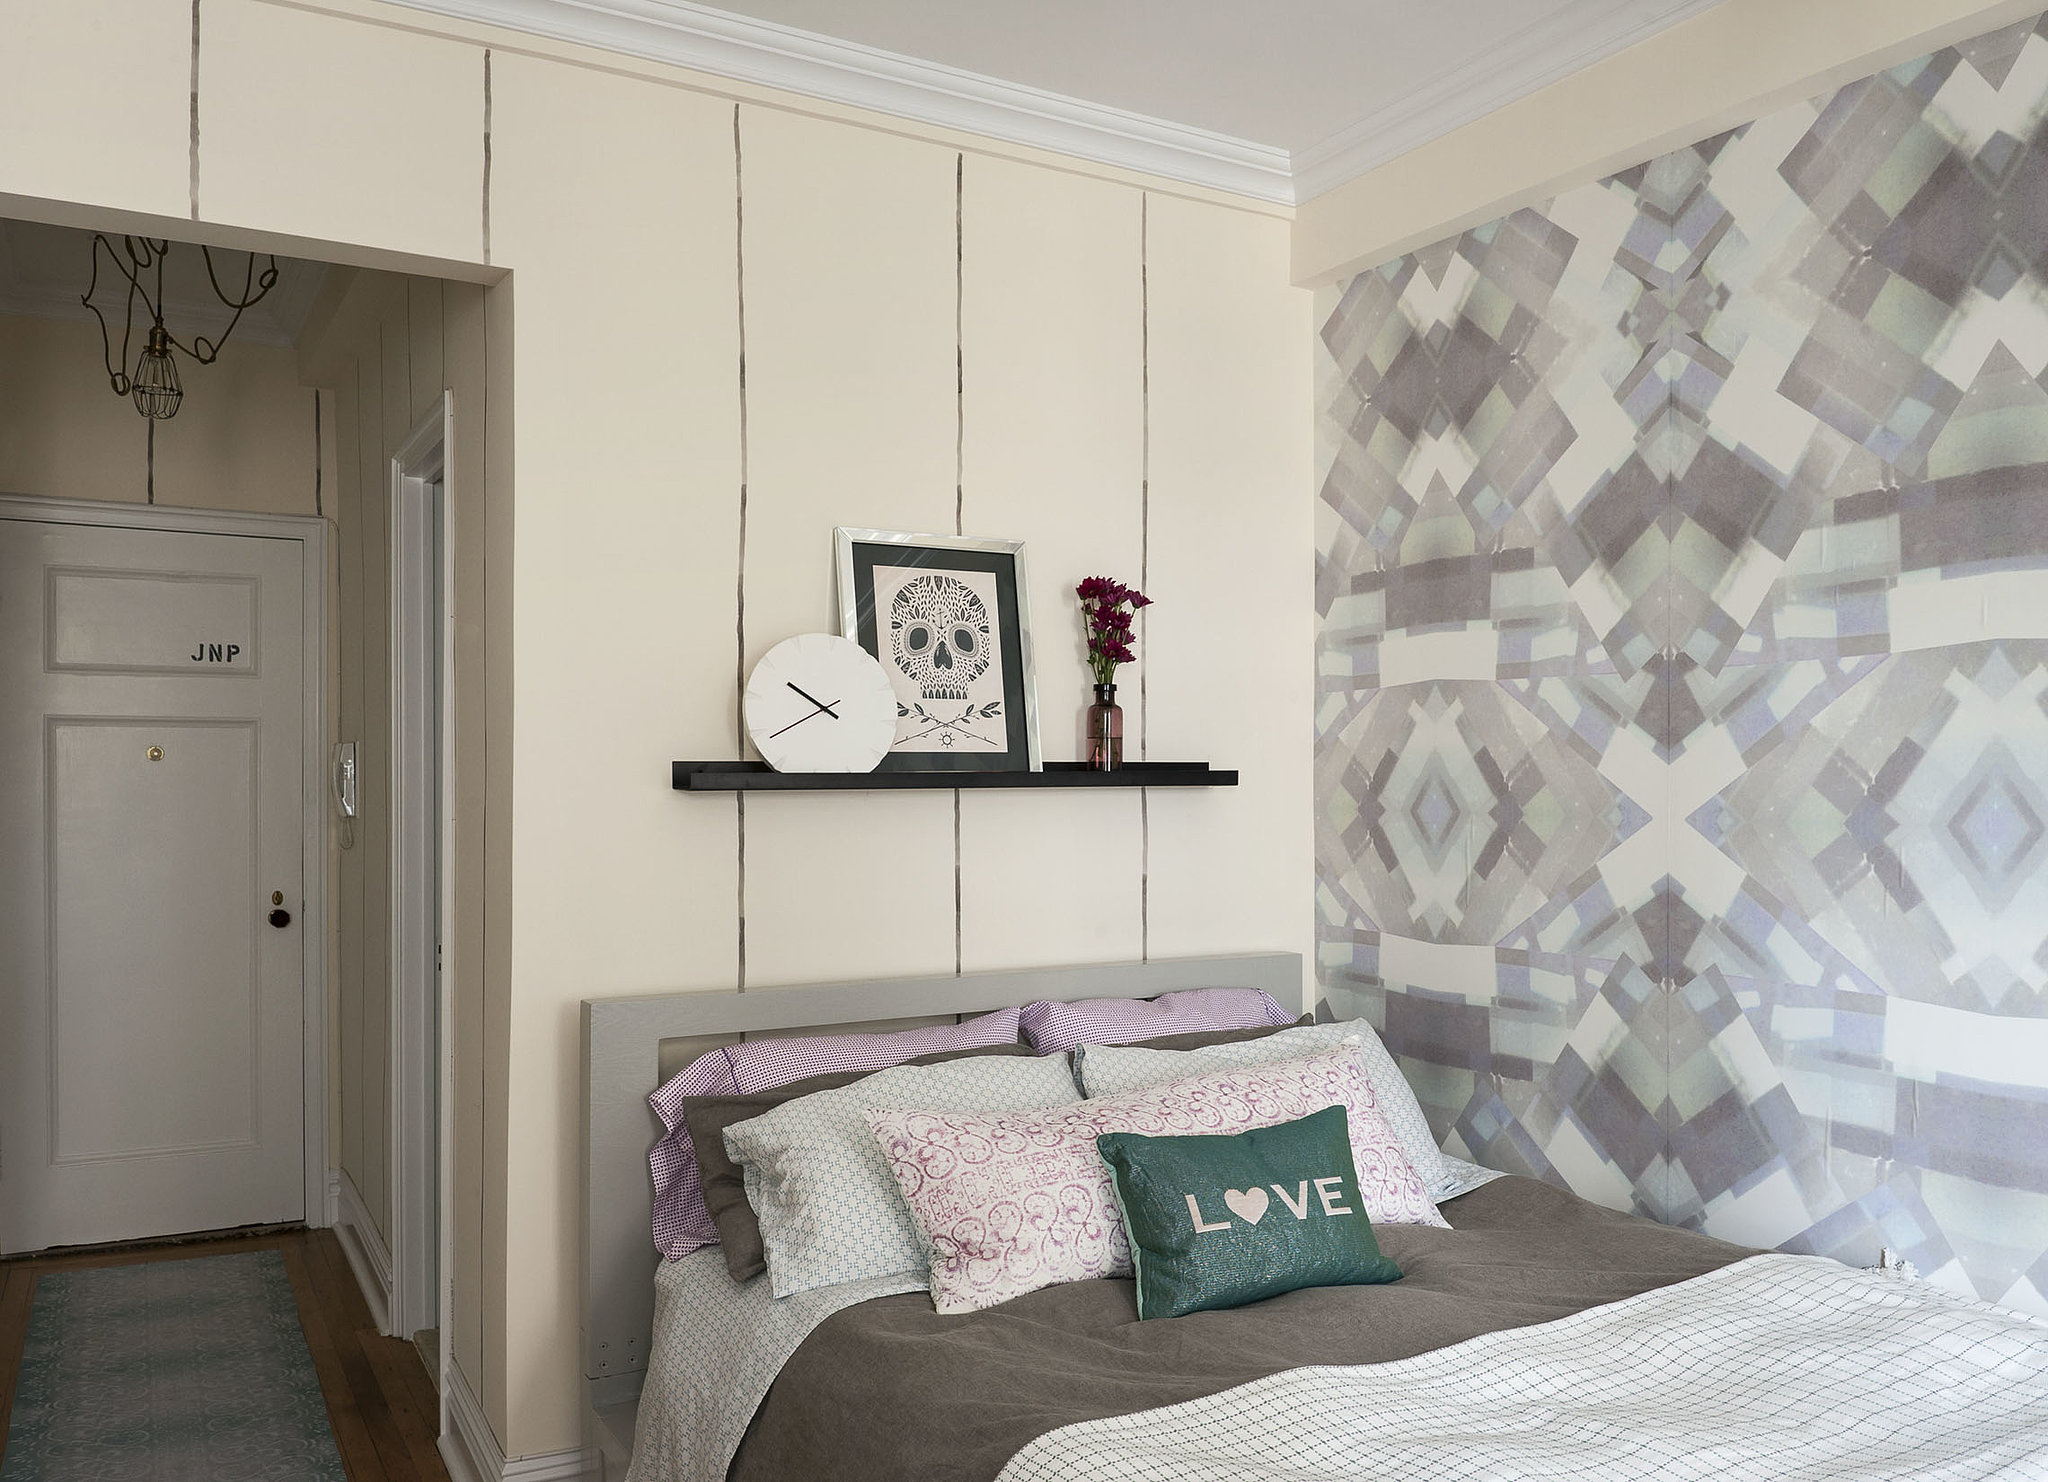 """PS: We love the wall art. How did you do that? It is from your Femme and Gem collection? LS: The one wall (next to the bed) is wallpapered in our """"Gemma"""" print (in Sapphire) from our """"Femme and Gem"""" collection. It's removable, and you can hang it yourself! For the other walls, we hand painted watercolor pinstripes to add personality and to tie everything together. Photo by  Matthew Williams via LABLstudio"""